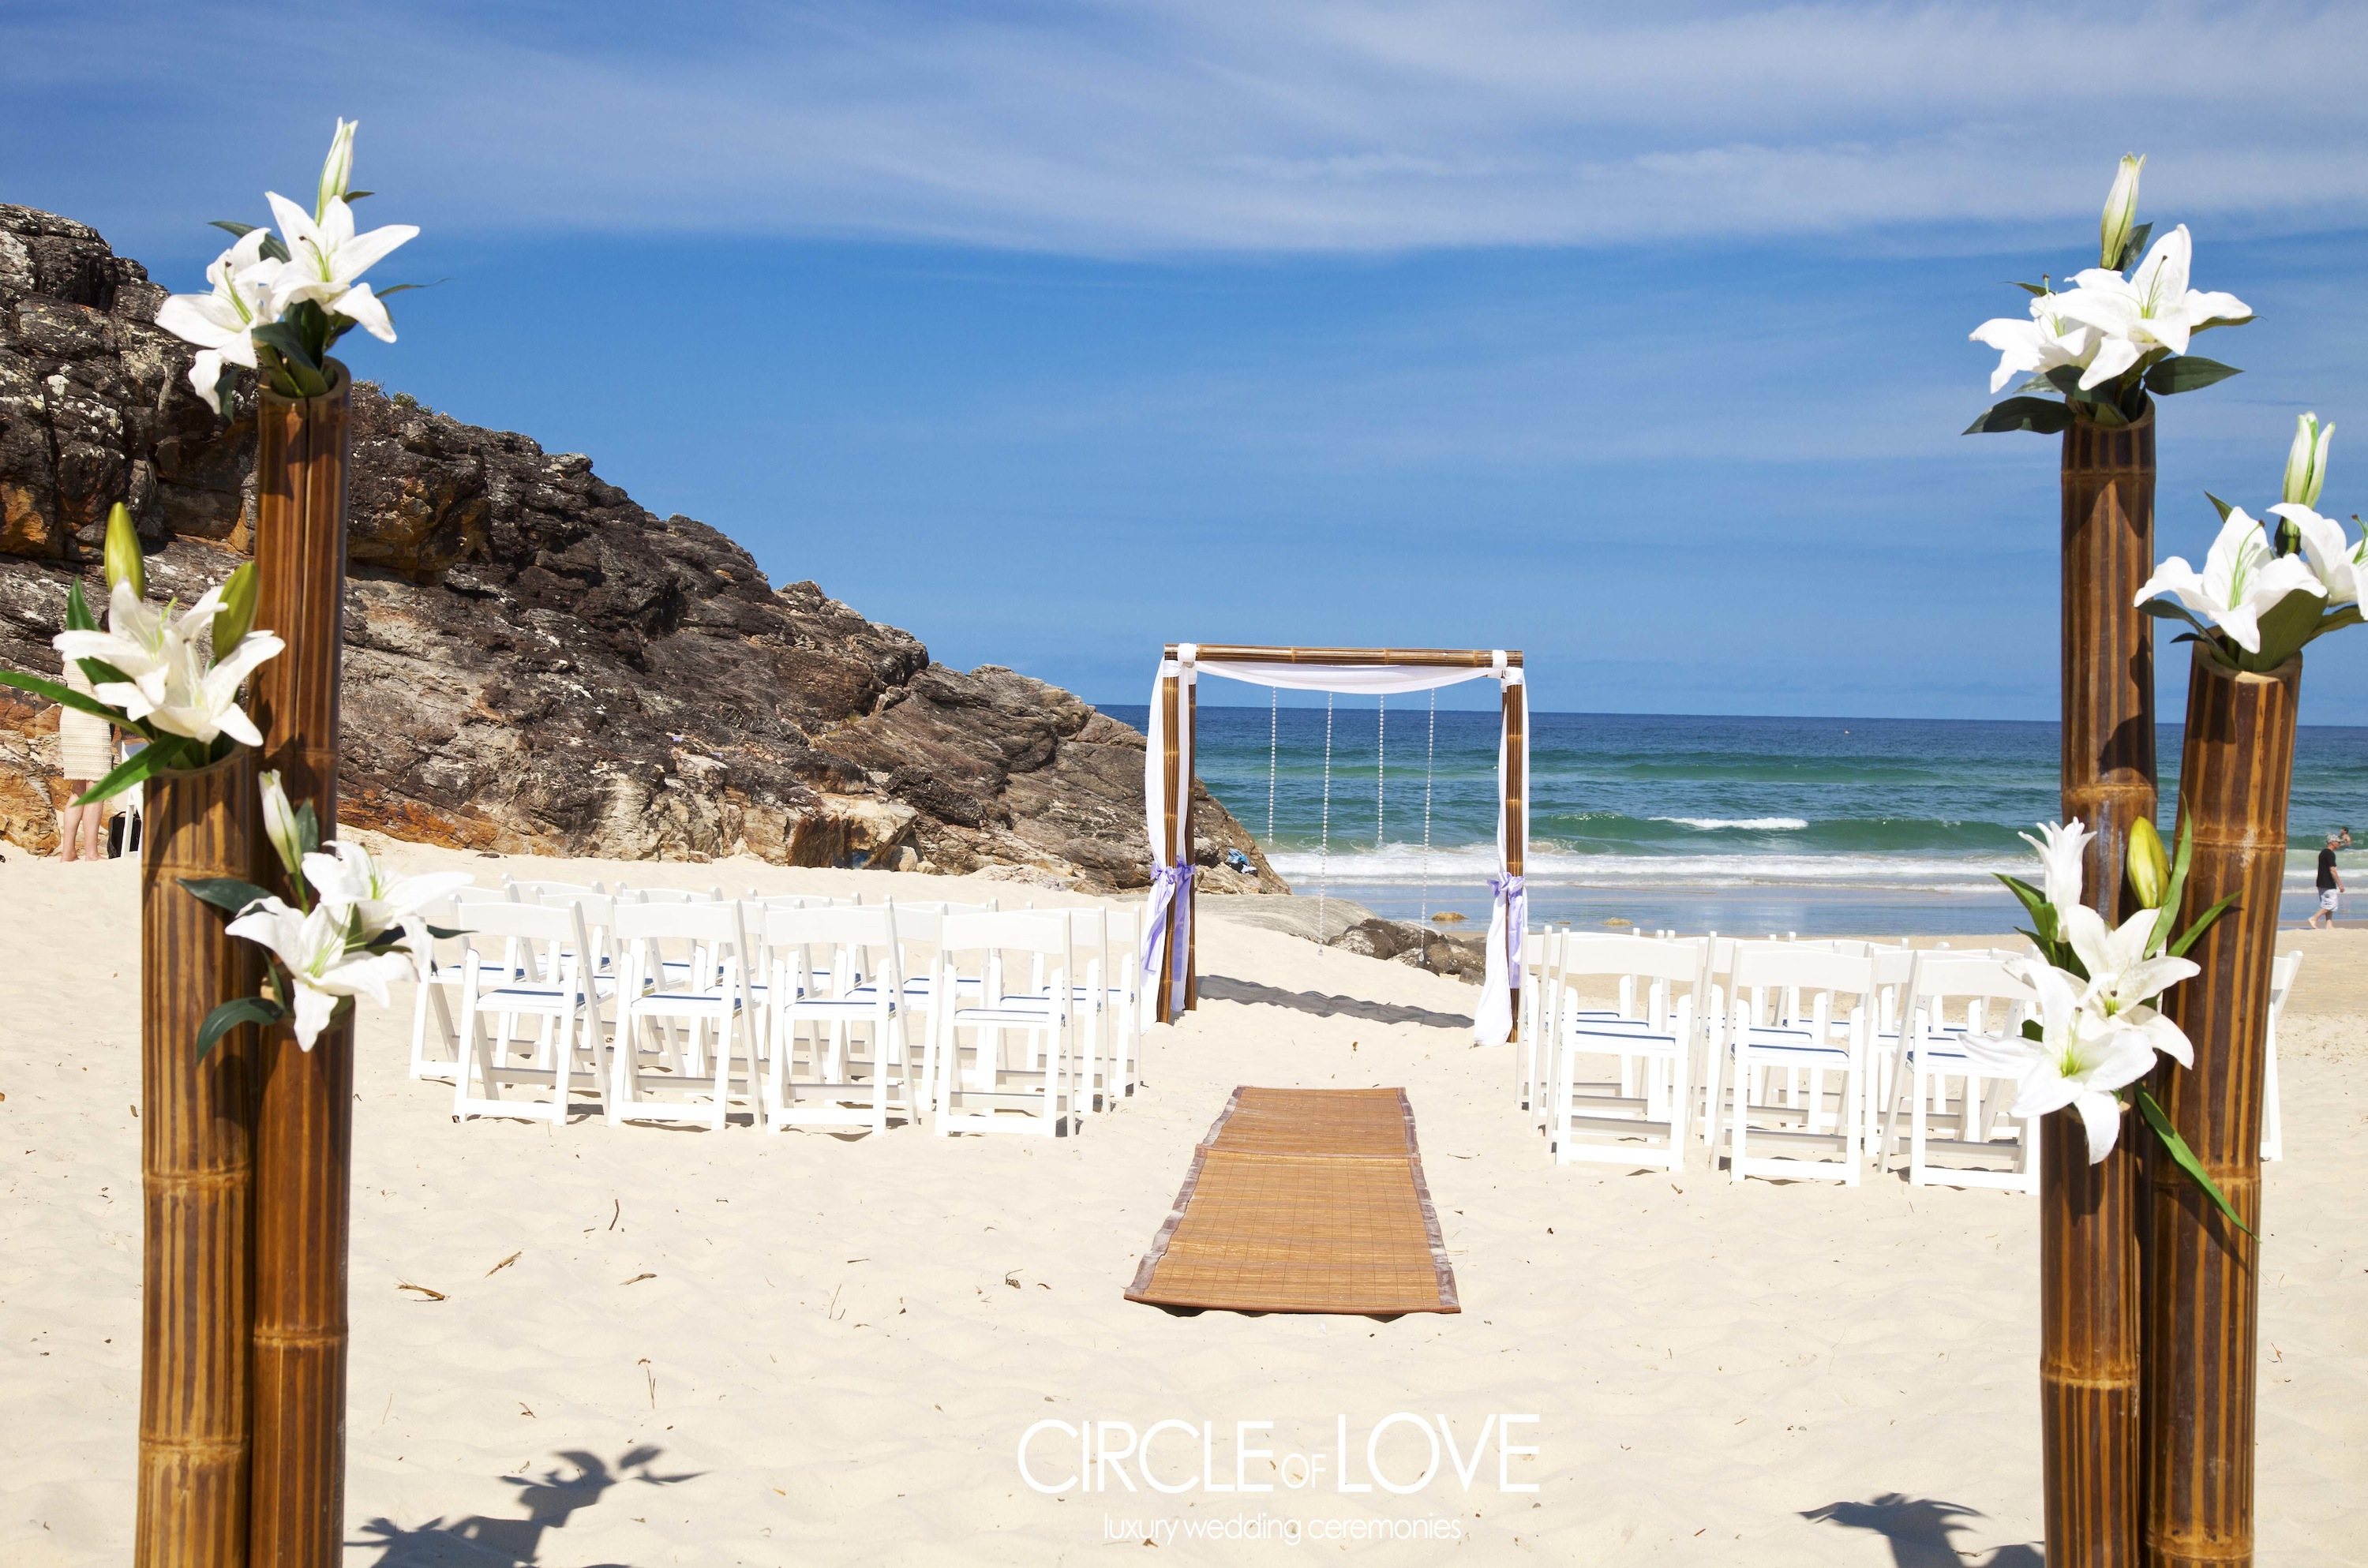 Gold coast beach weddings and ceremonies perfect location for East coast beach wedding locations